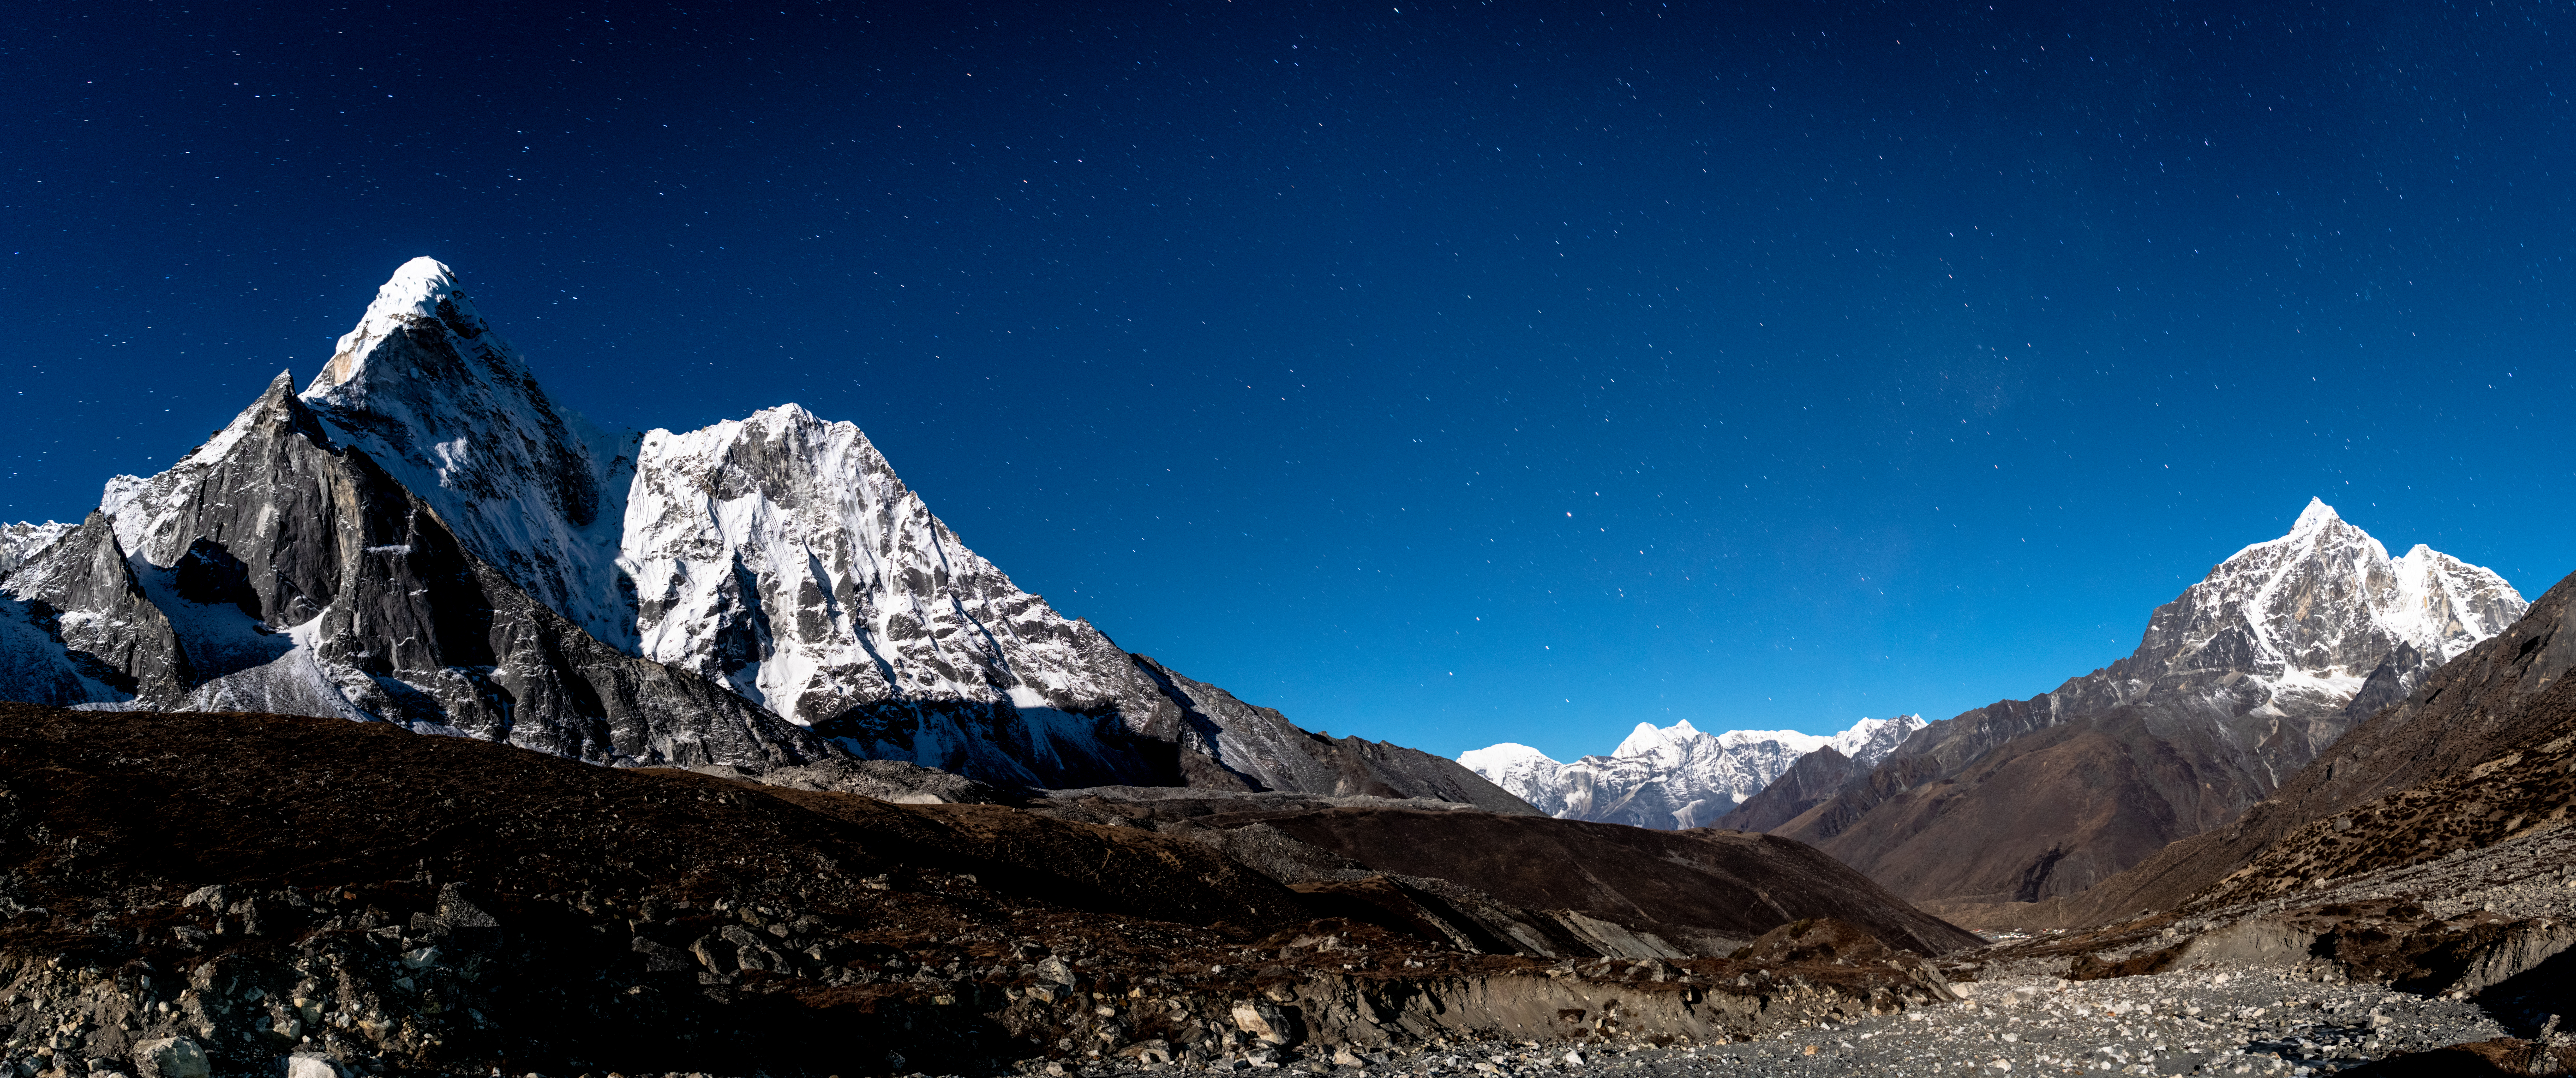 Ama Dablam under the Moonlight